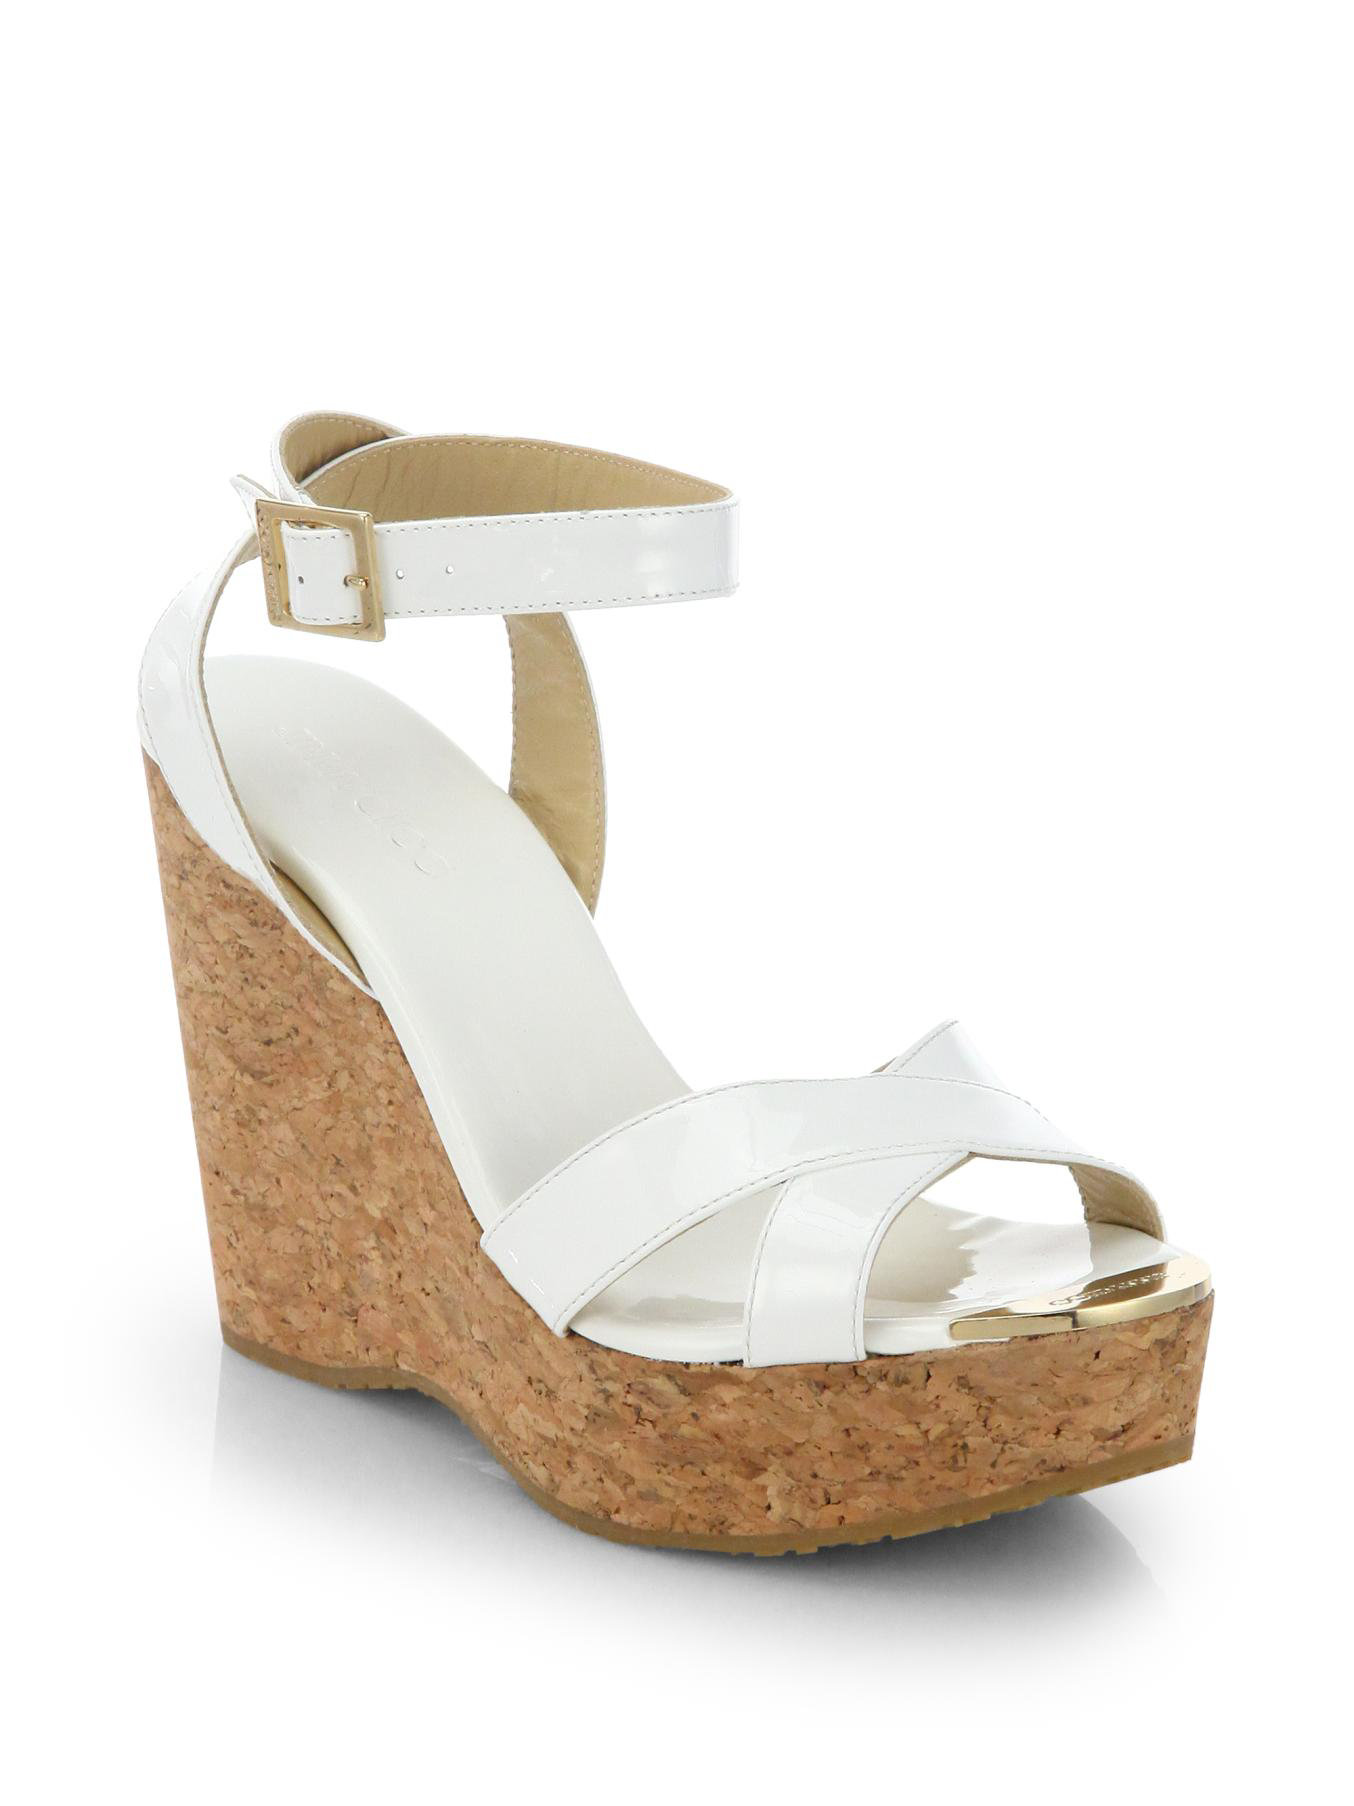 19448c689e7a ... greece lyst jimmy choo papyrus patent leather and cork wedge sandals in  white ceb5f 85884